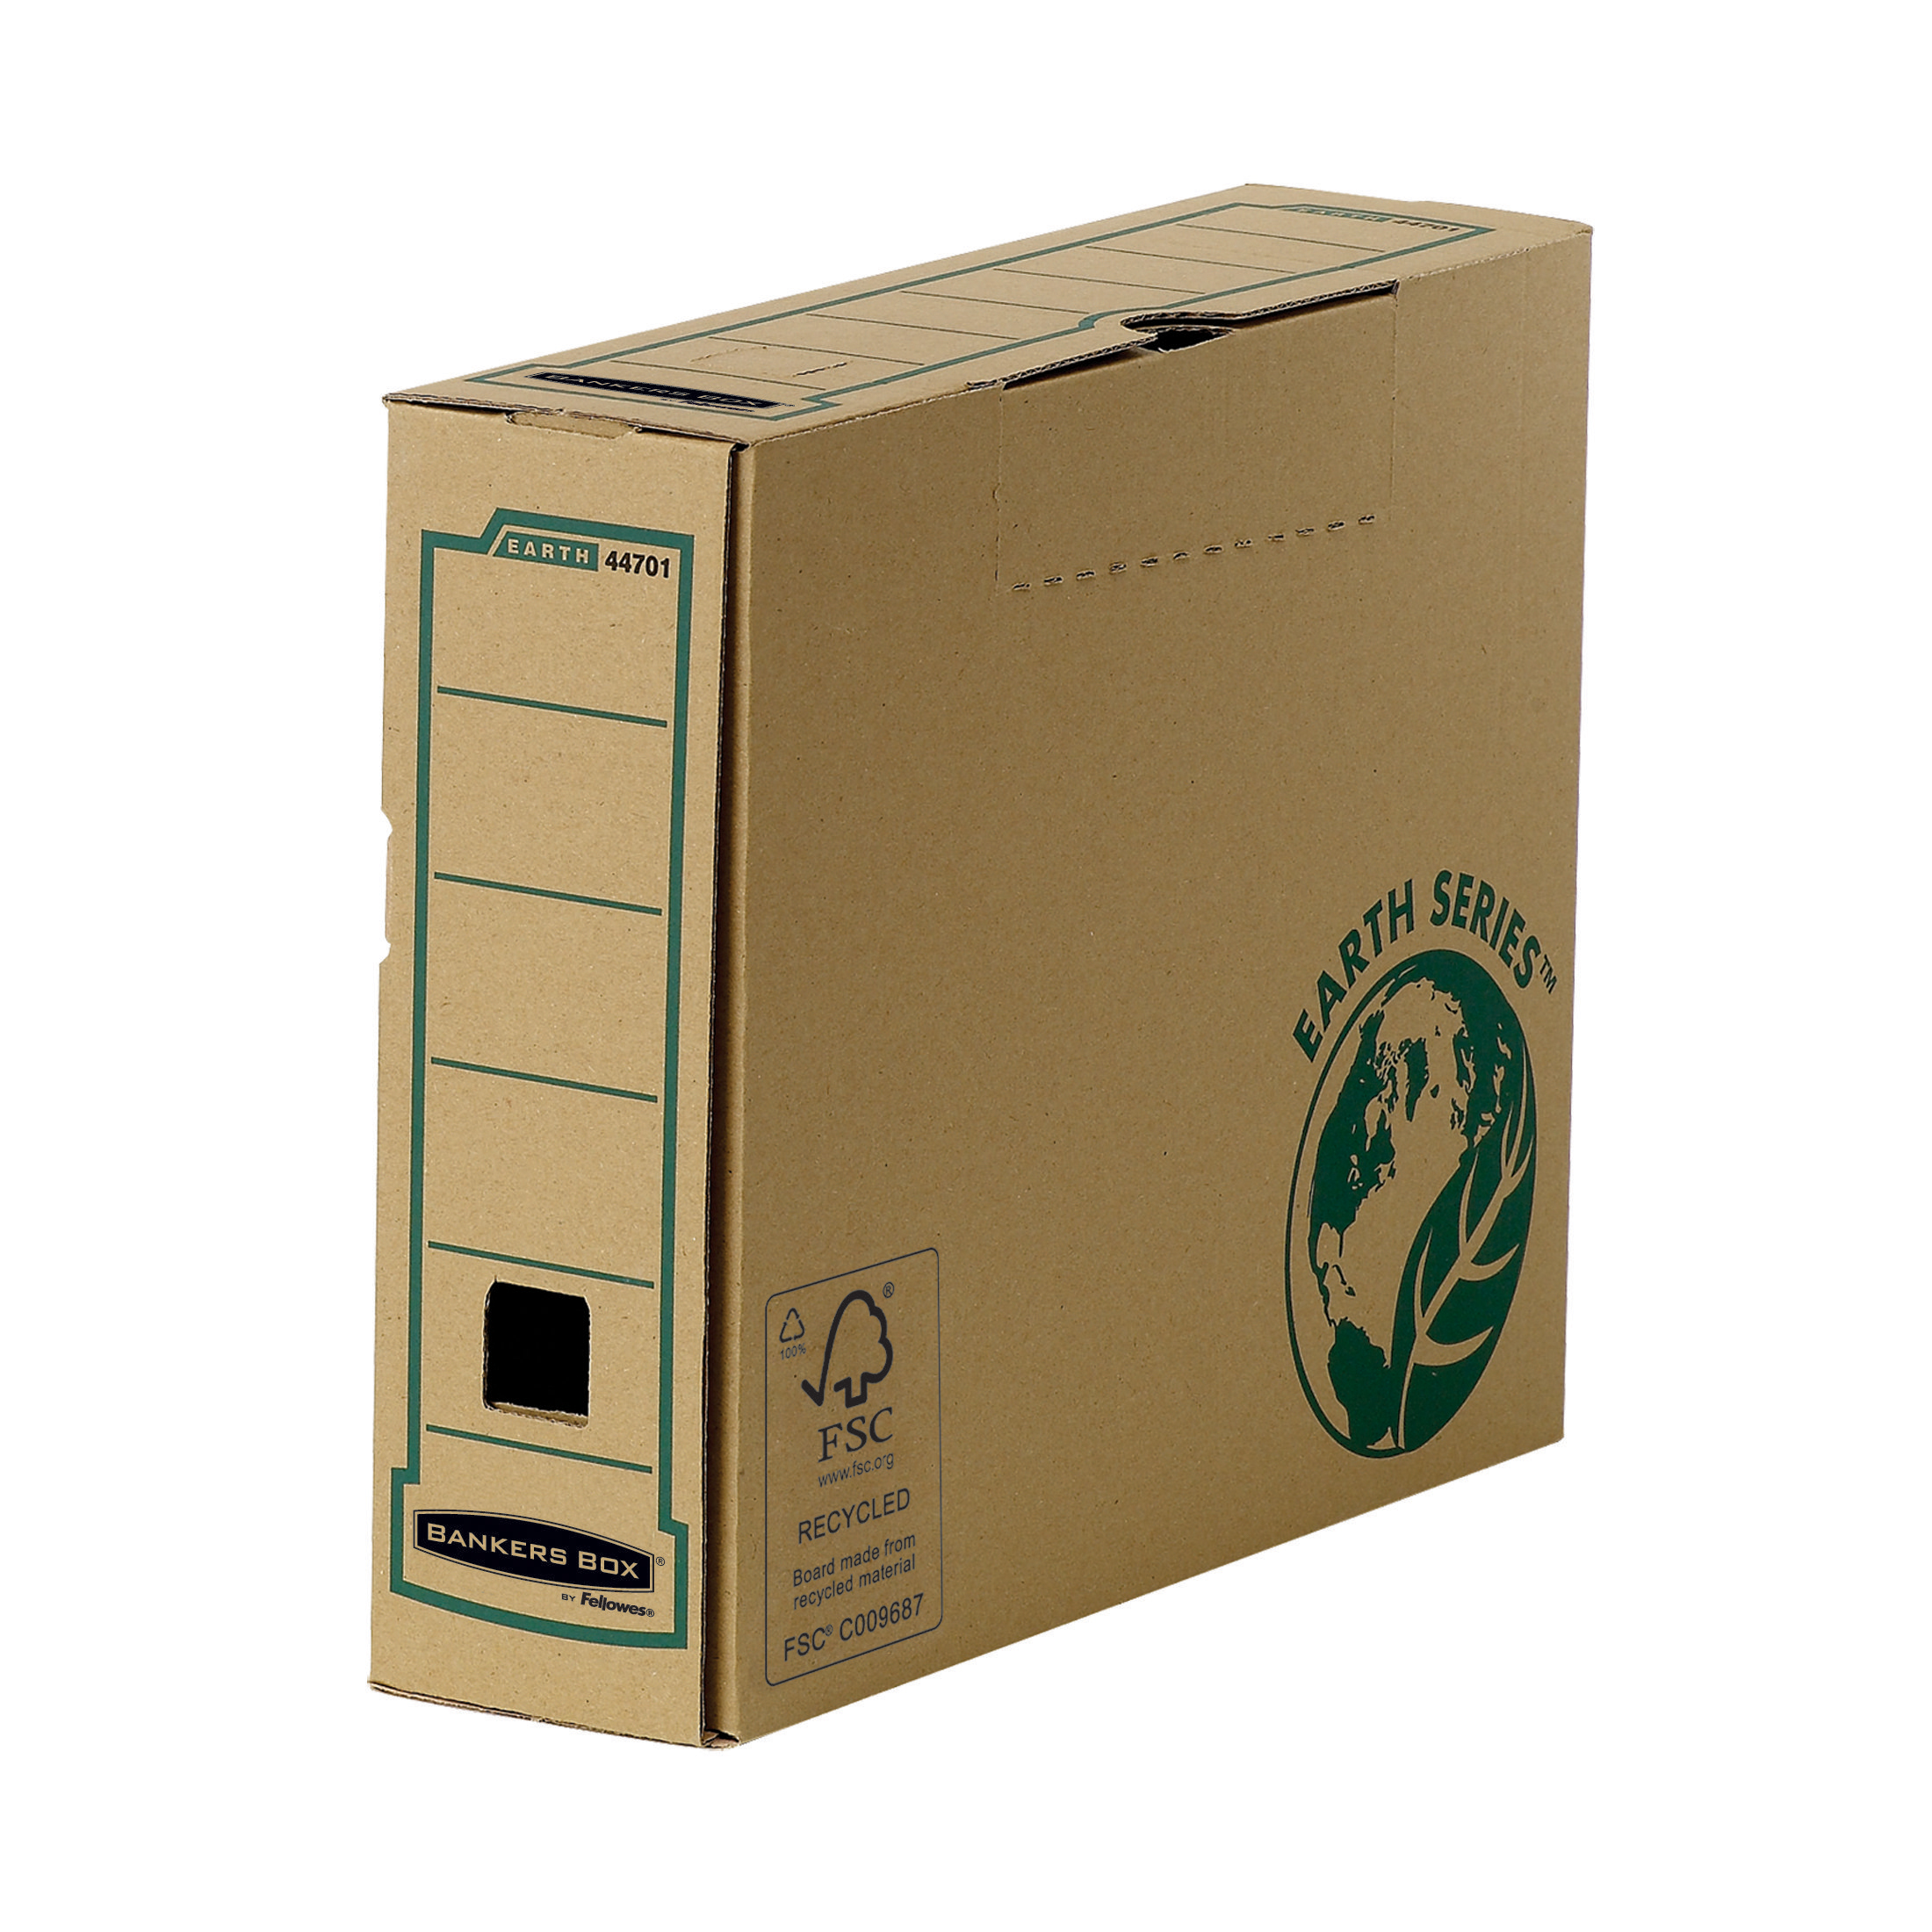 Bankers Box by Fellowes Earth Srs Transfer Bx File Rcyc FSC Tab Lock Lid W80mm A4 Ref 4470101 [Pack 20]